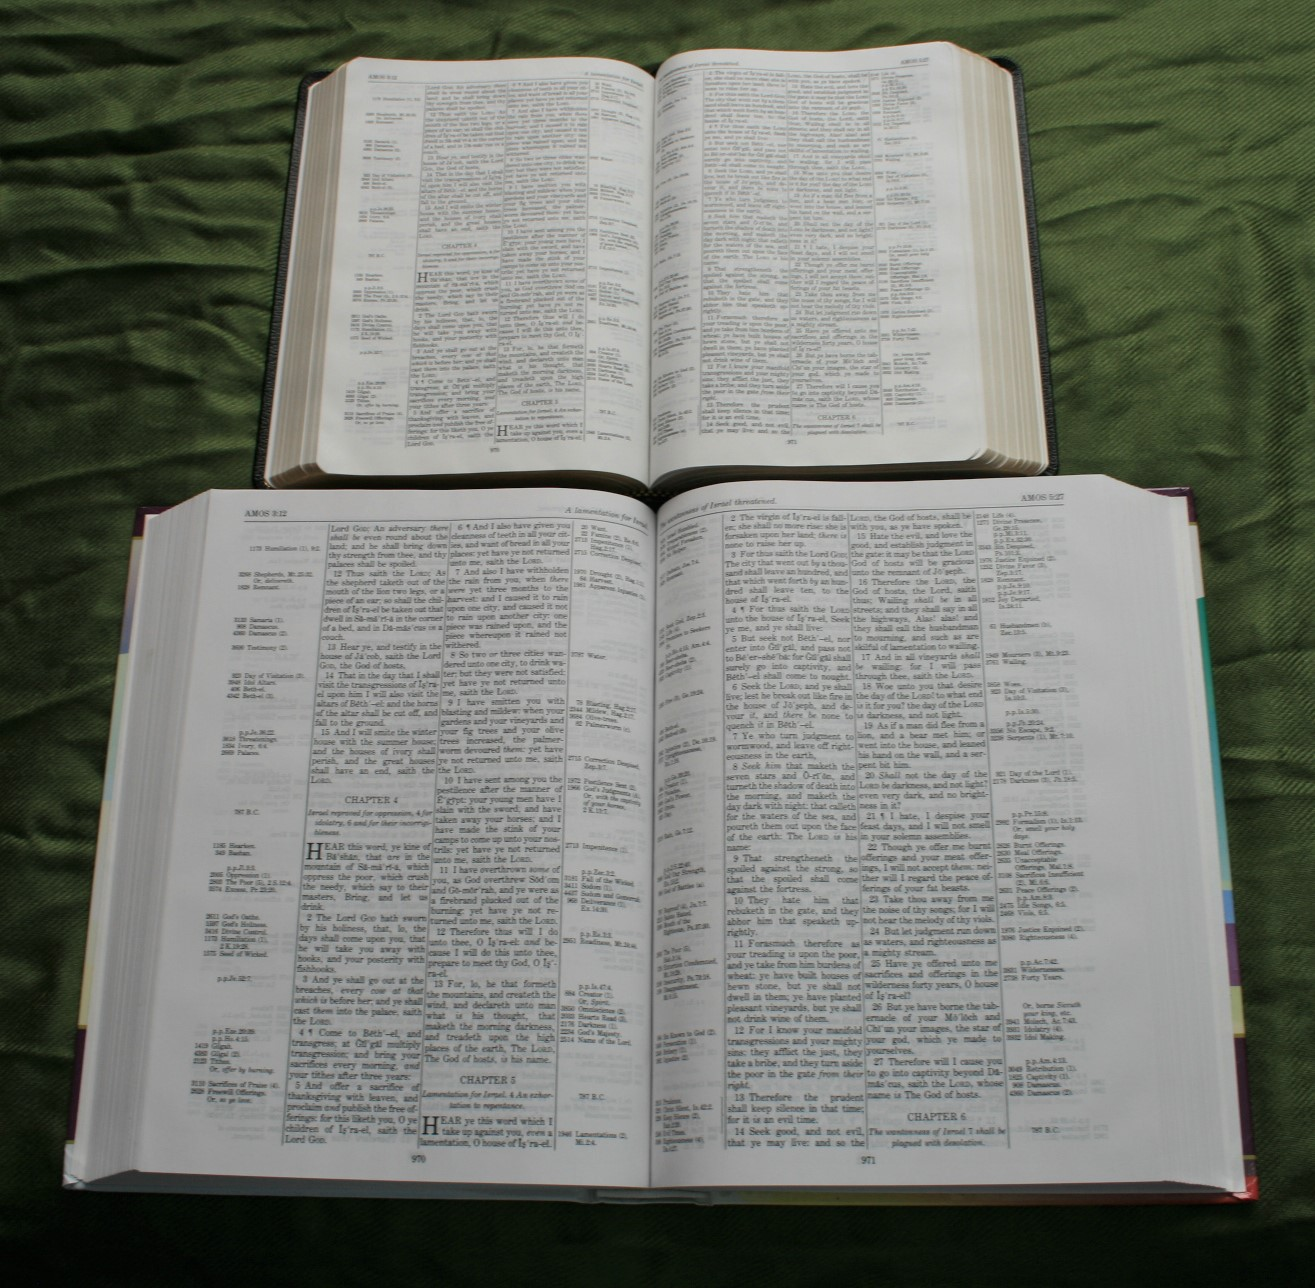 Handy Size Thompson Chain Reference Bible KJV (31)